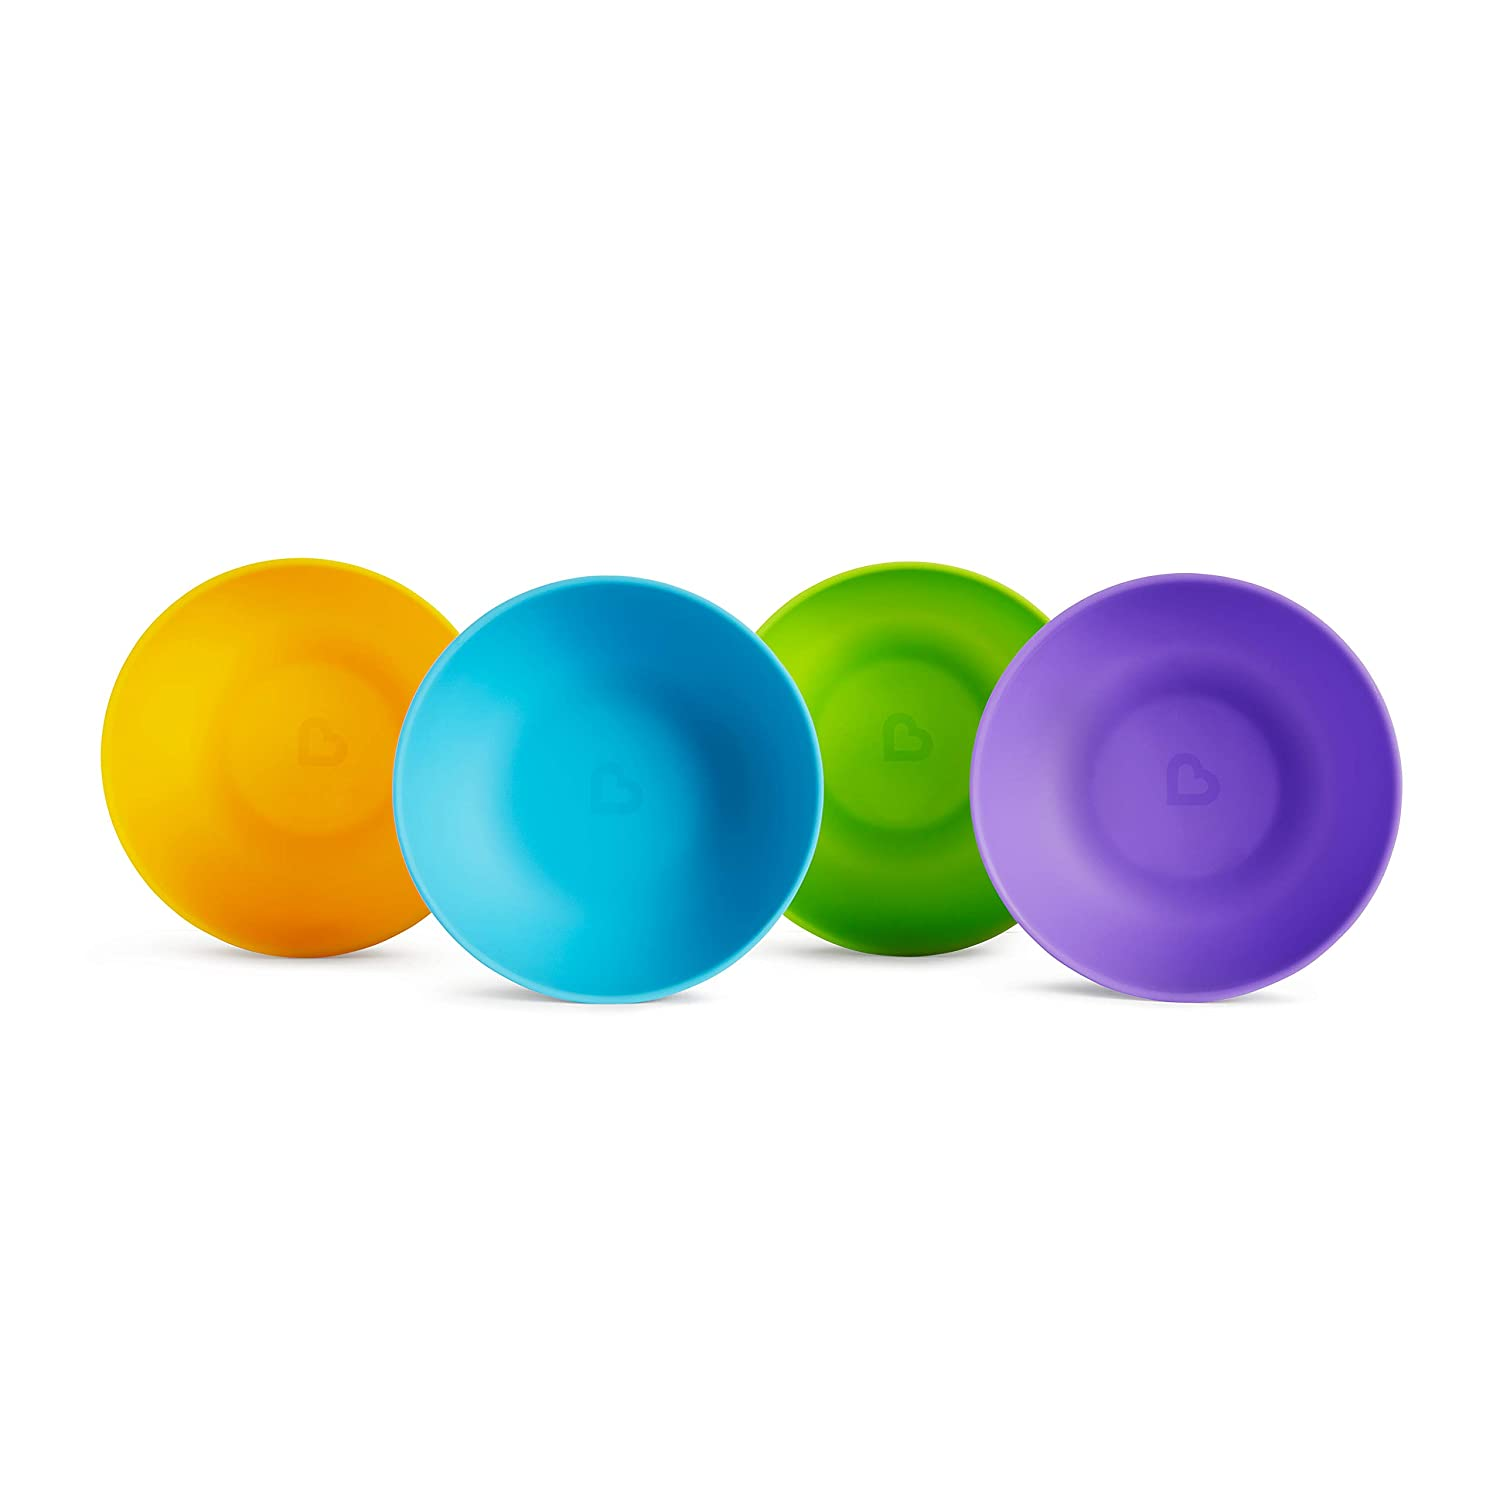 Munchkin 4-Pack Multi-Color Bowls bundle with 6-Pack Soft Tip Infant Spoons